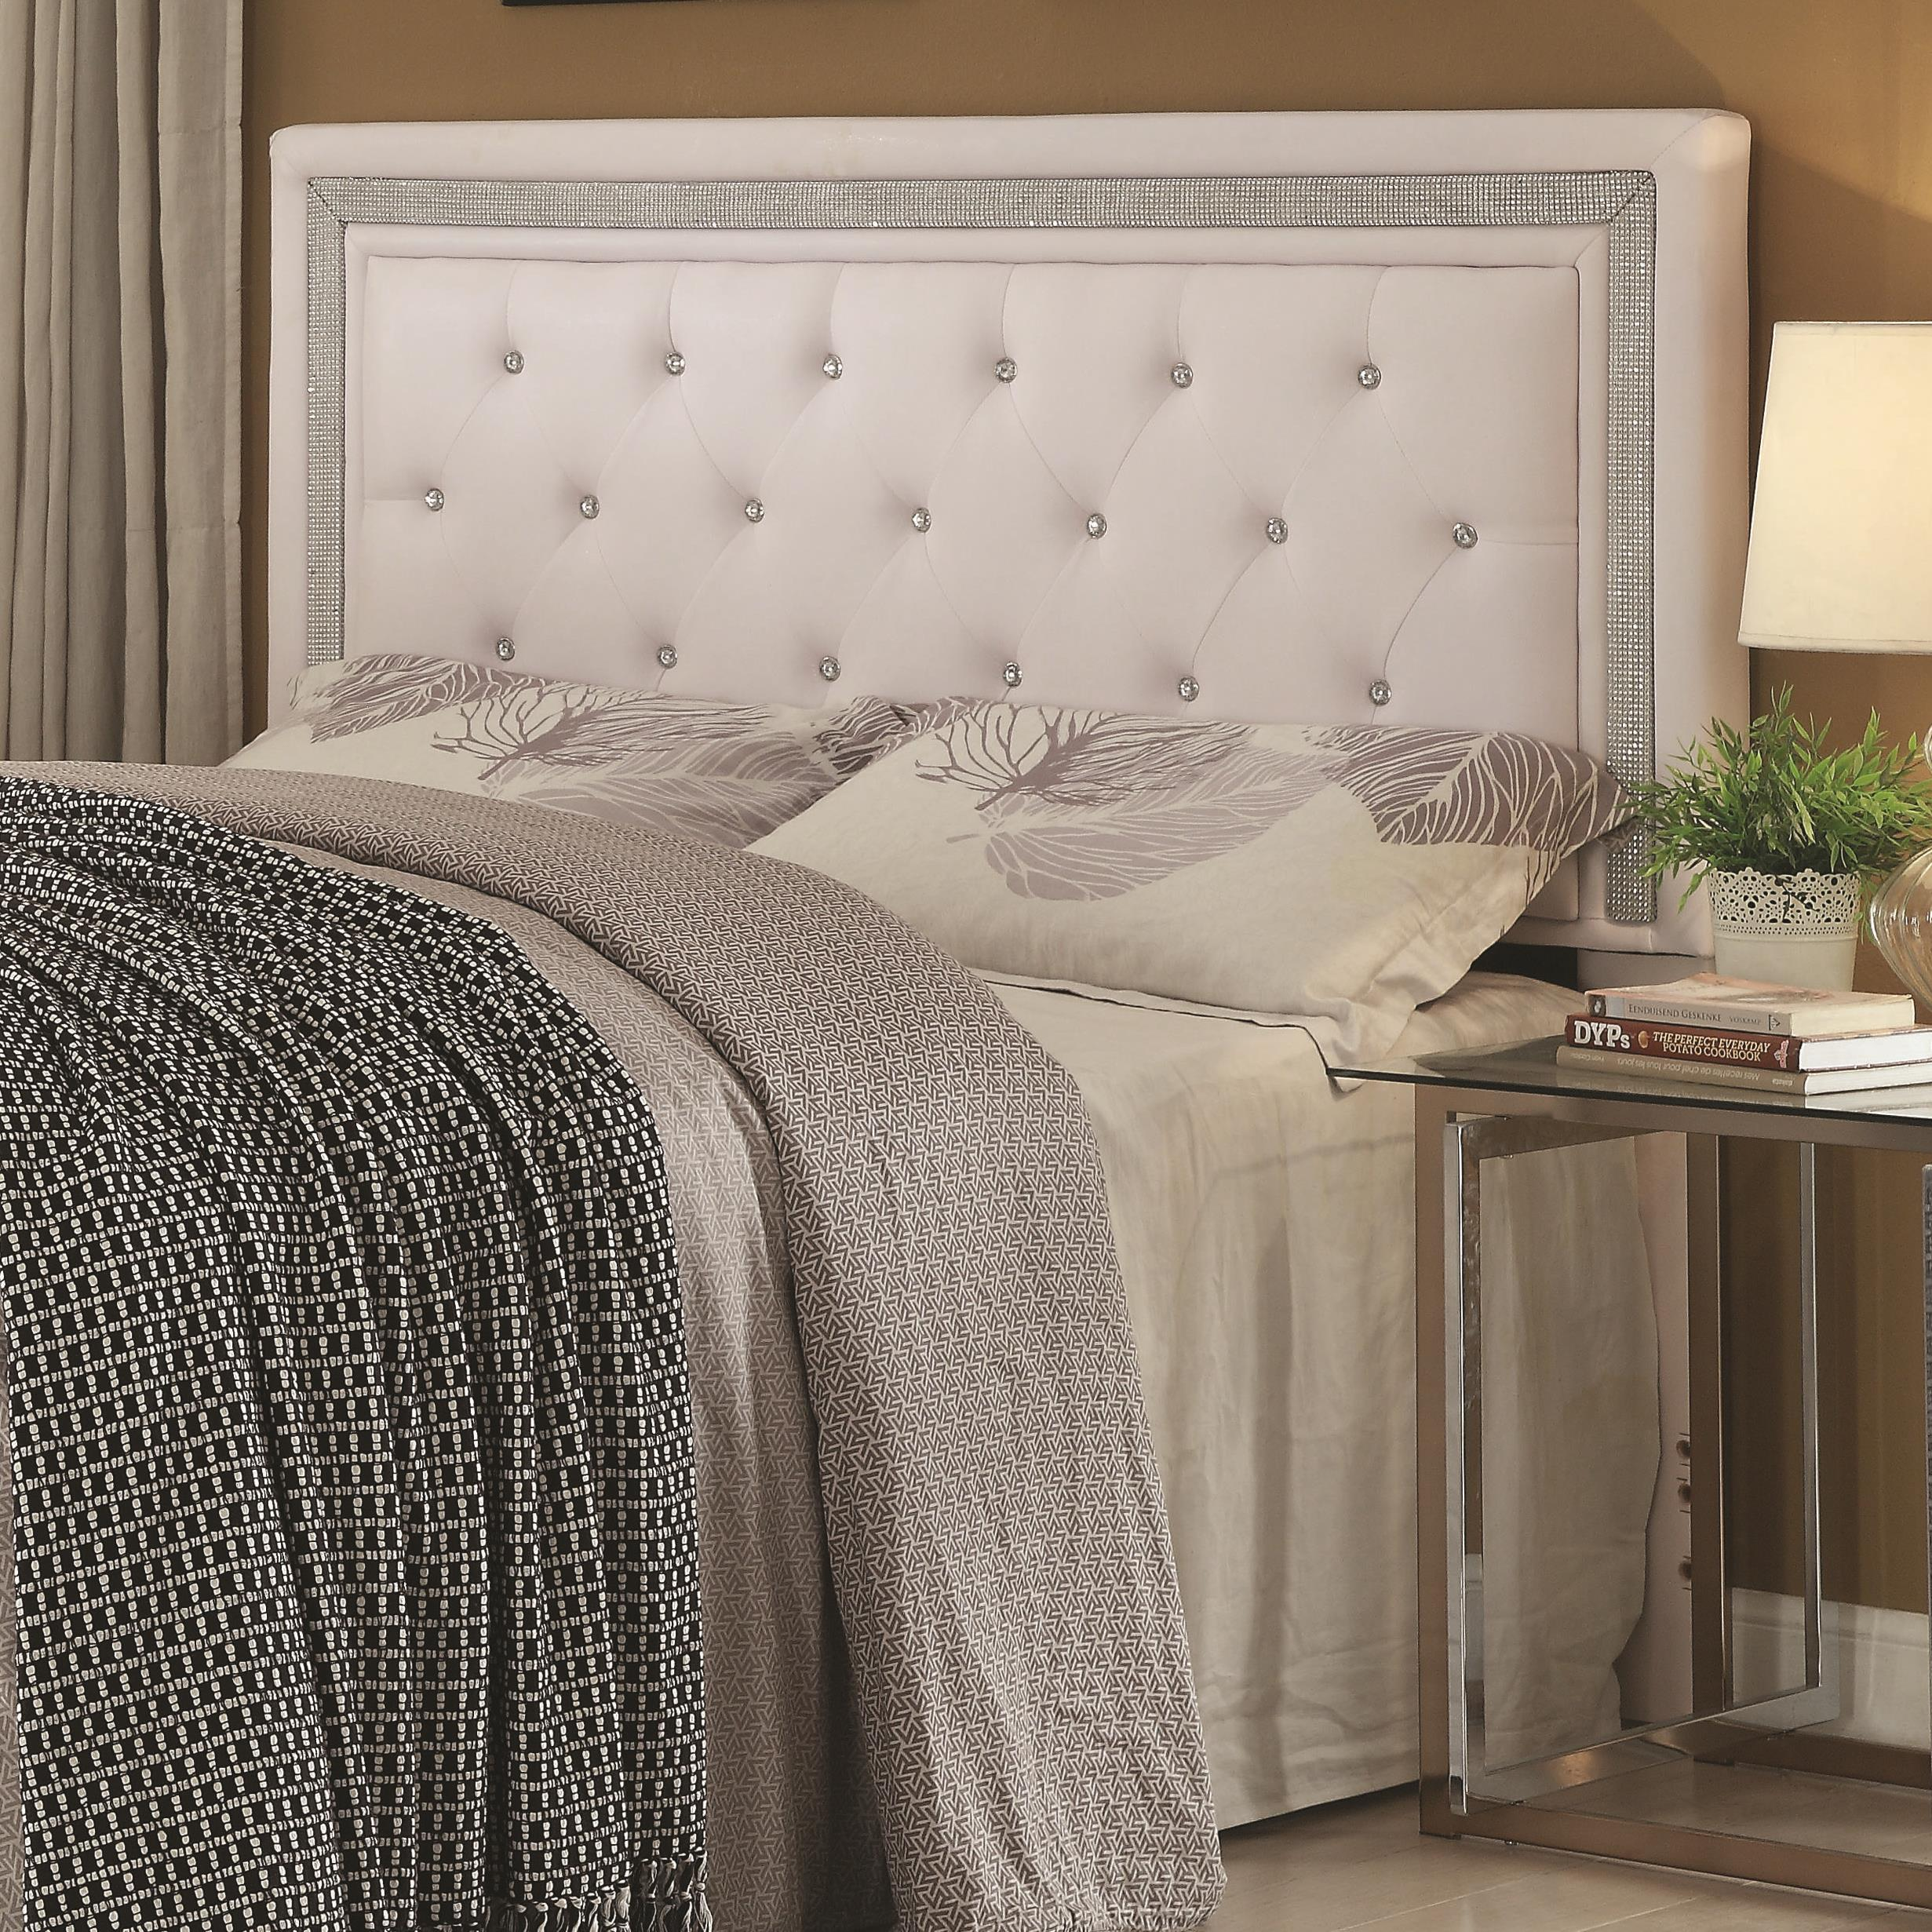 Andenne Bedroom Queen/Full Headboard by Coaster at Lapeer Furniture & Mattress Center